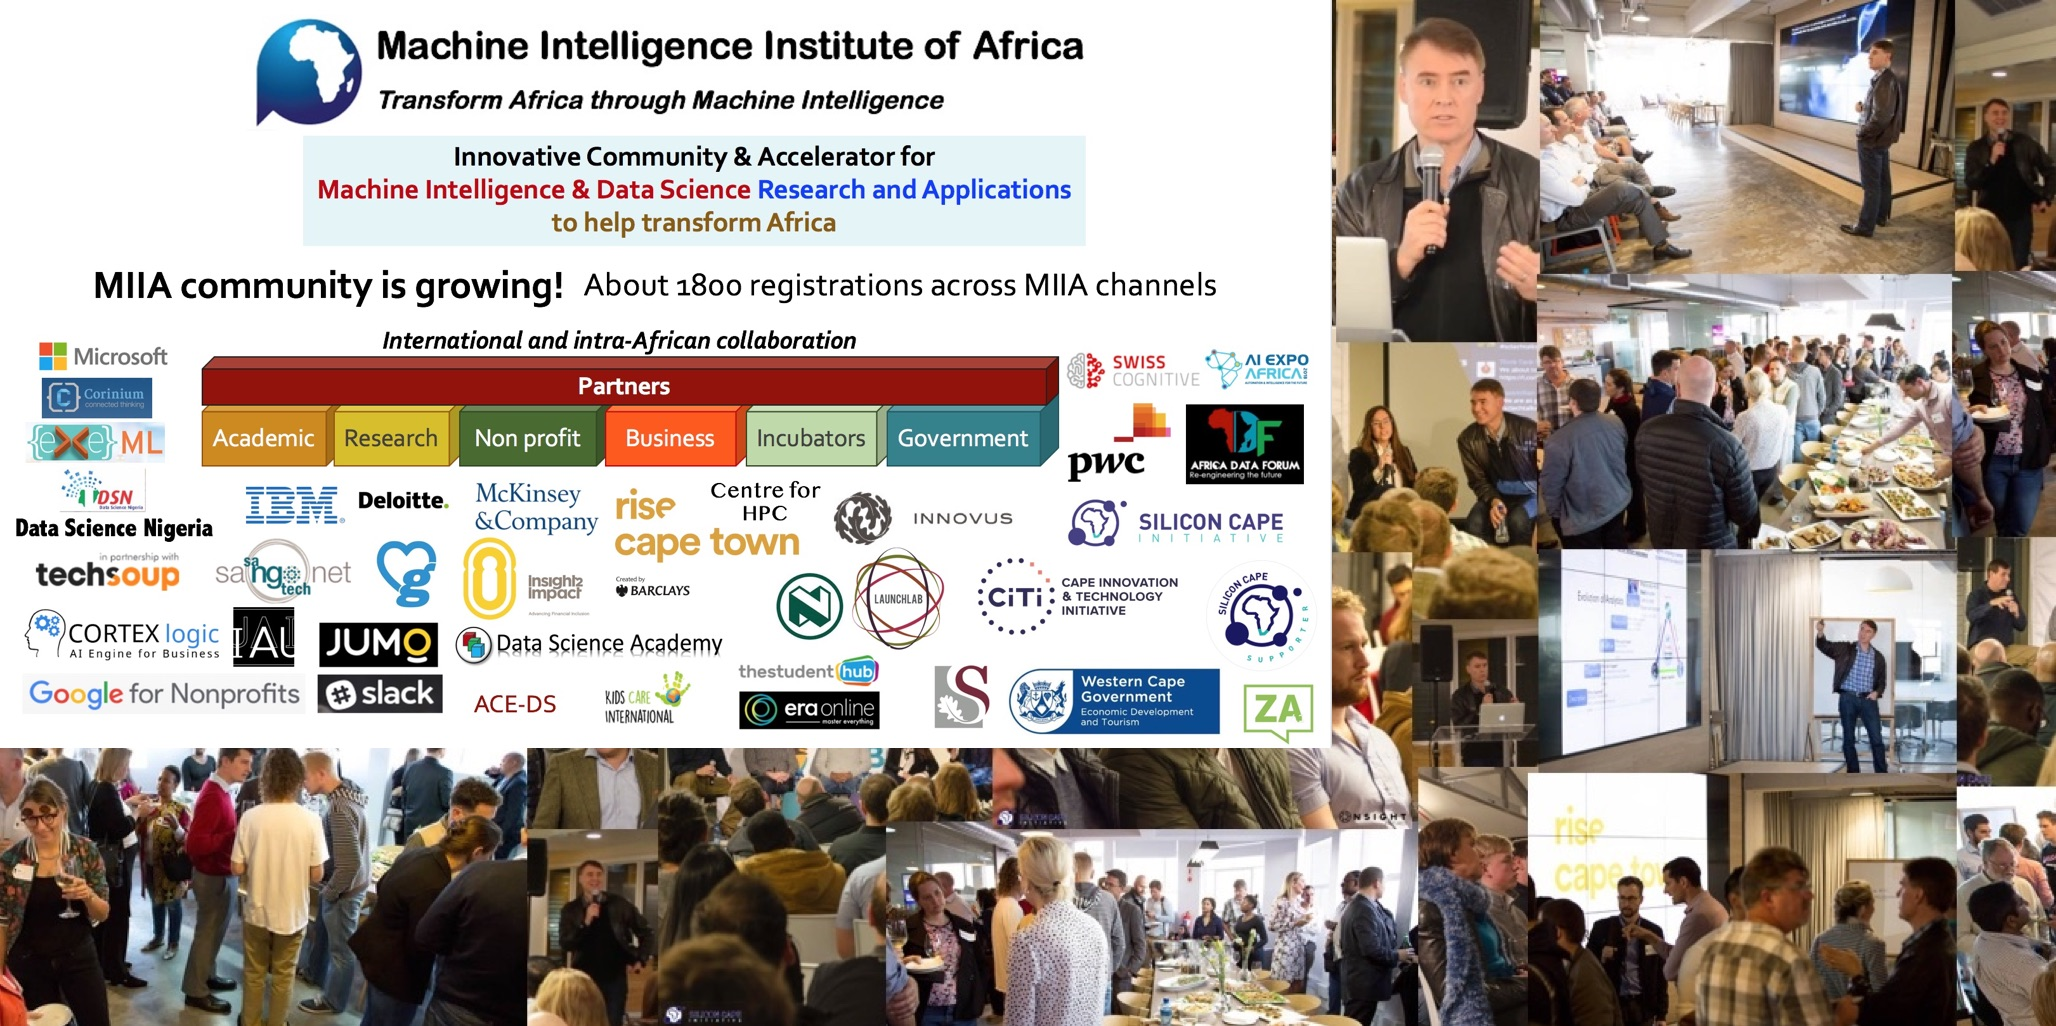 Machine Intelligence Institute of Africa 2018